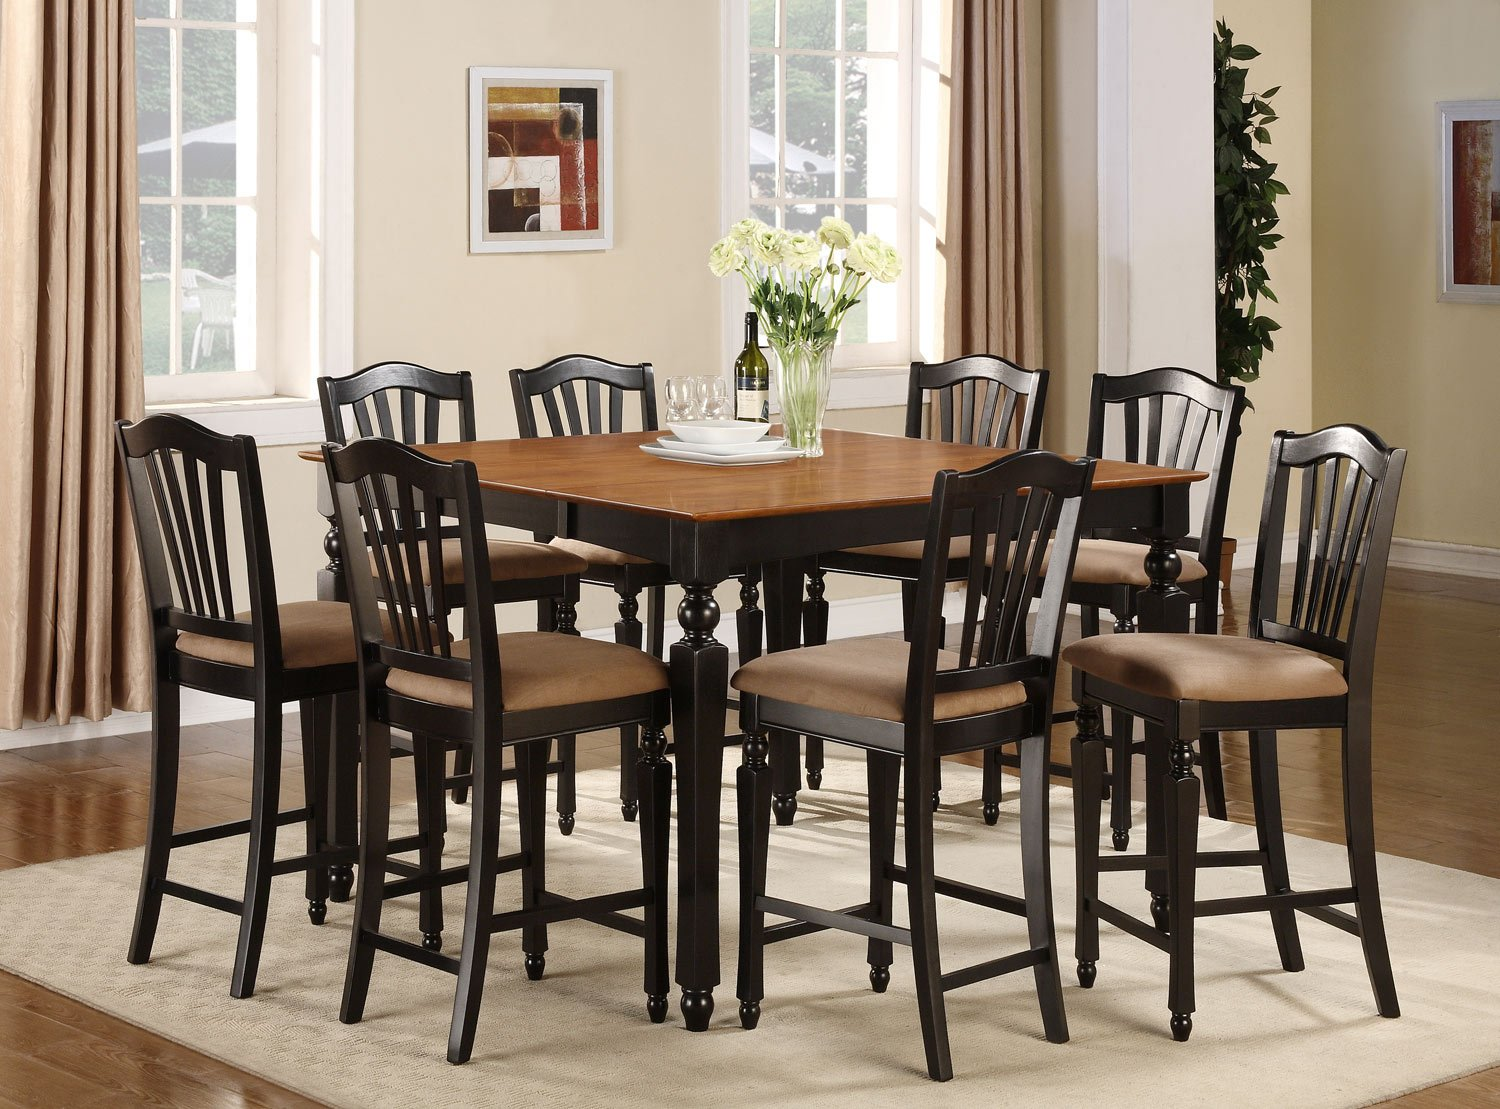 Counter Height Gathering Table Sets : Chelsea 5-Pc Gathering Counter Height Dining table Set in Black ...